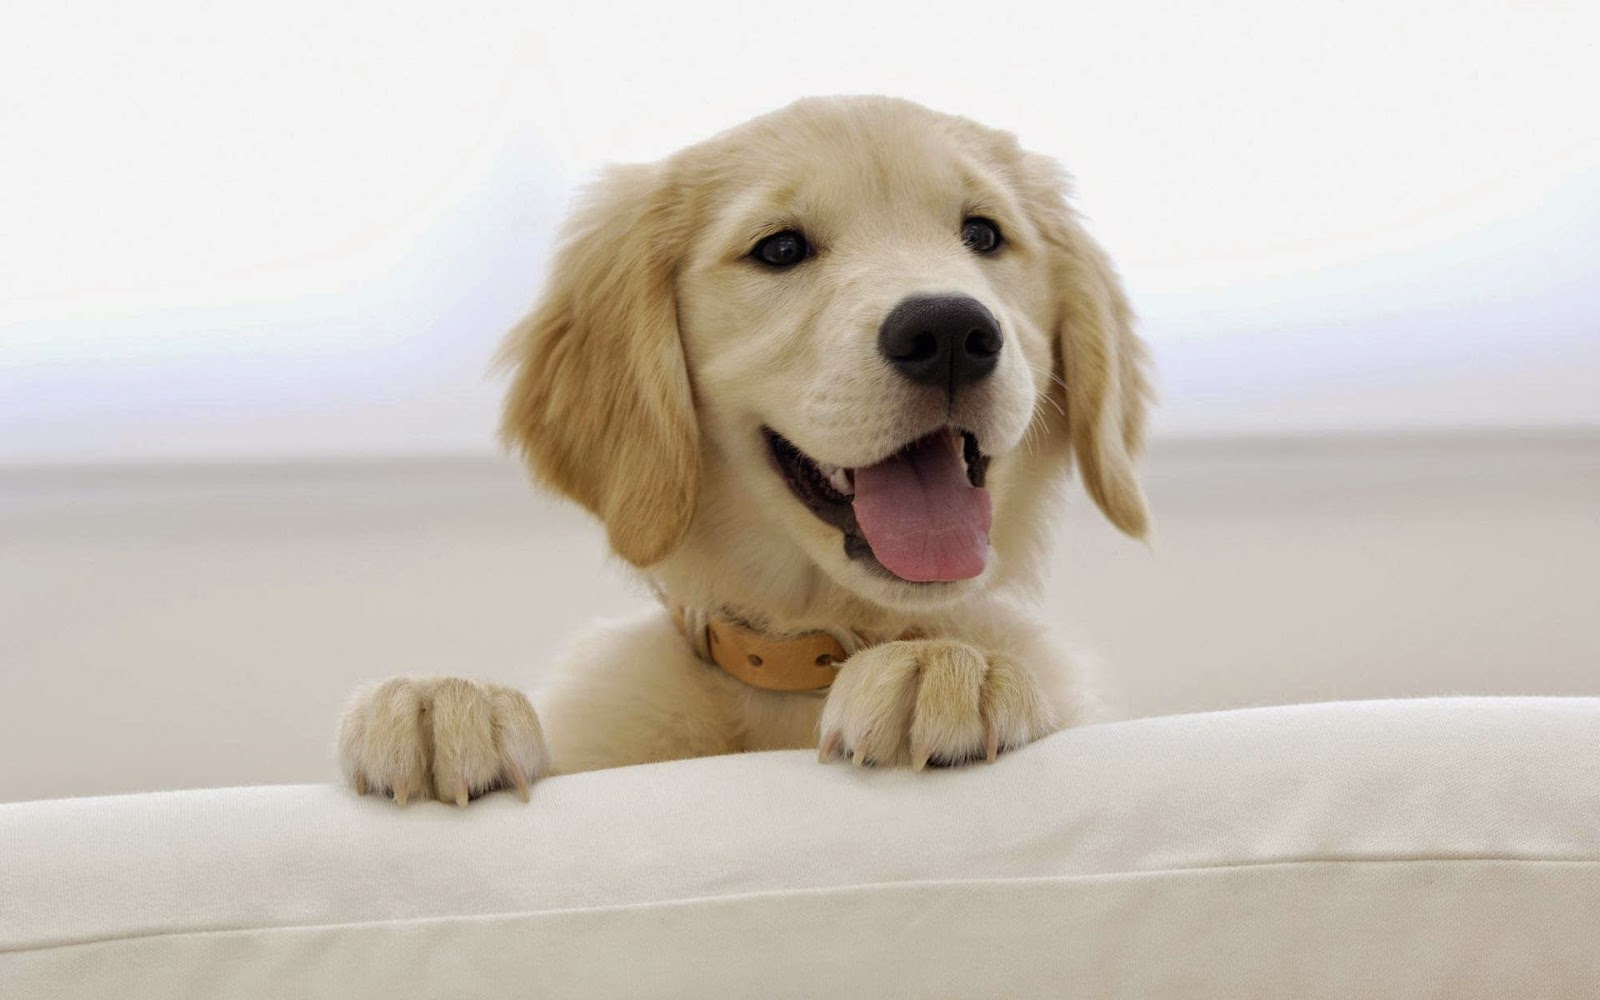 Smile is your best accessory - dog